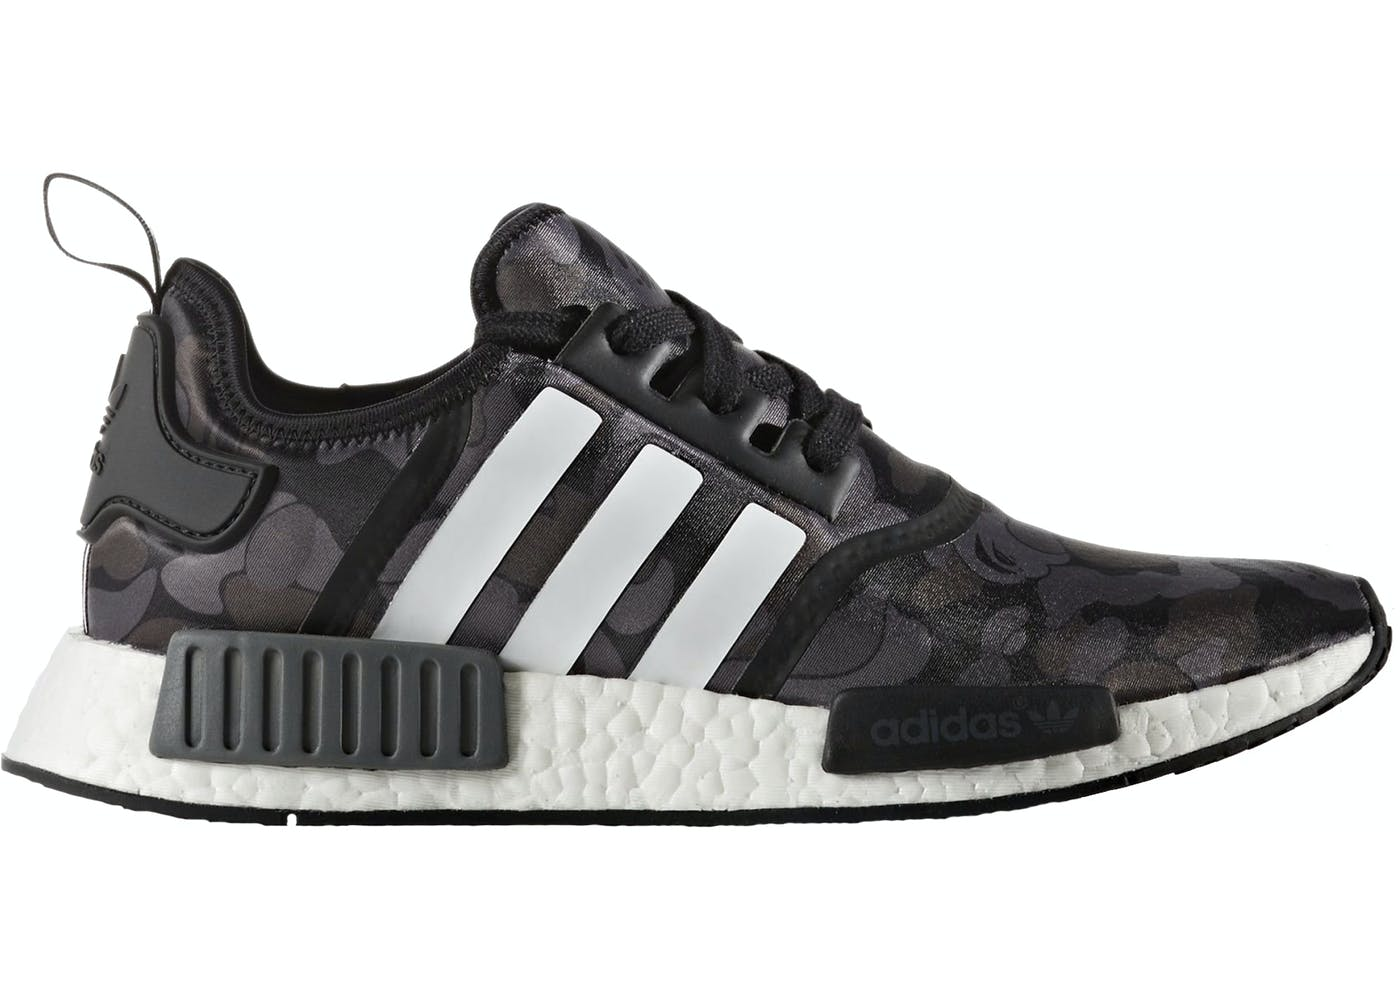 on sale 24f15 3fb0a Cheap NMD R1 Shoes for Sale, Buy Cheap Adidas NMD R1 Boost Online